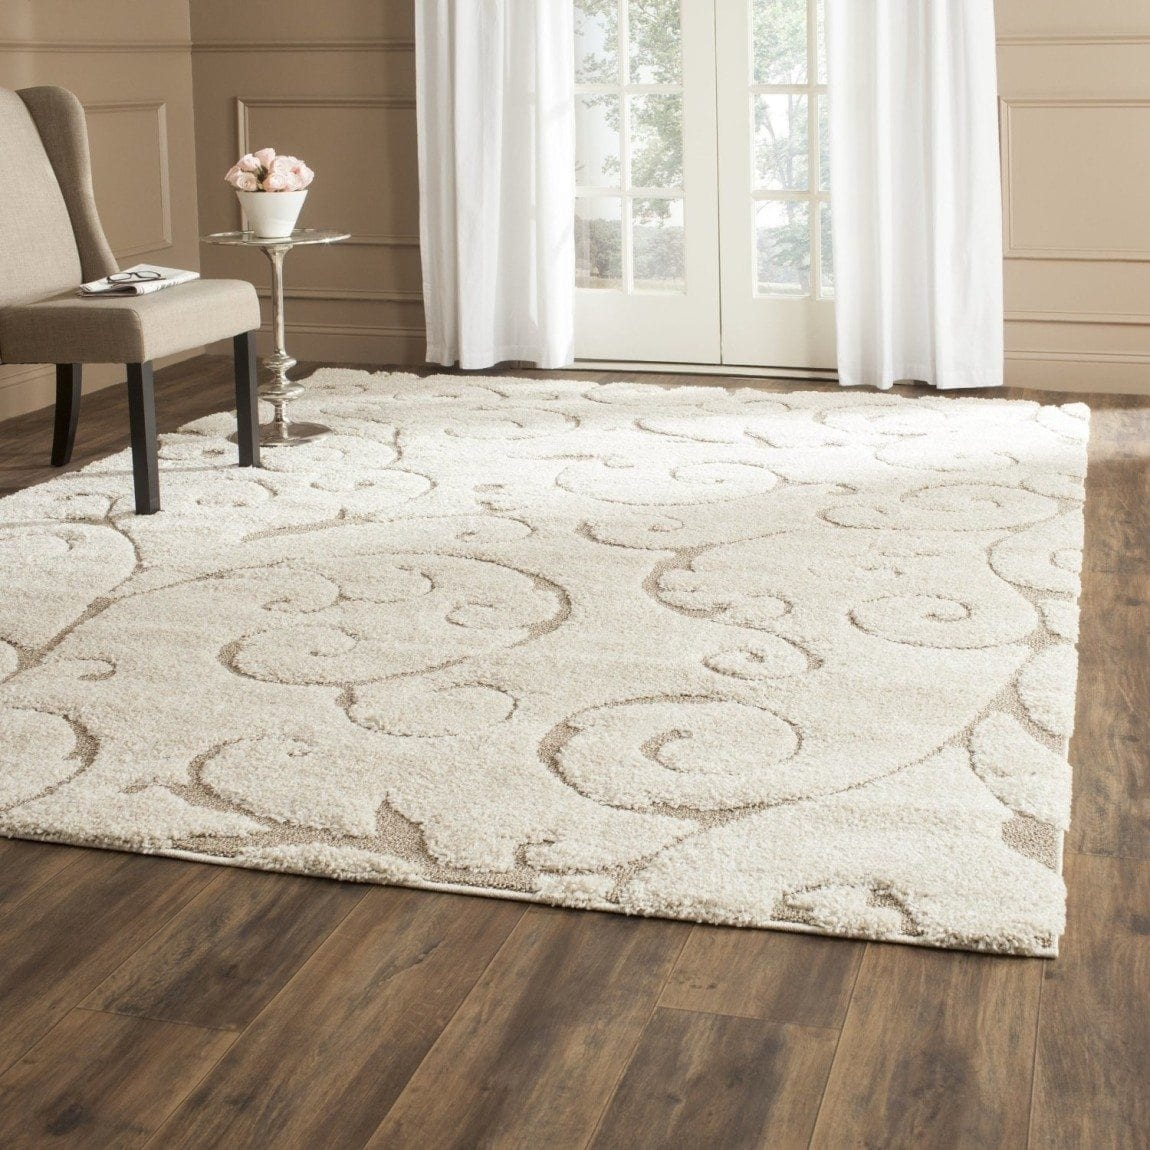 Safavieh Florida Shag Collection SG455-1113 Cream and Beige Shag Area Rug, 8 feet by 10 feet (8' x 10')